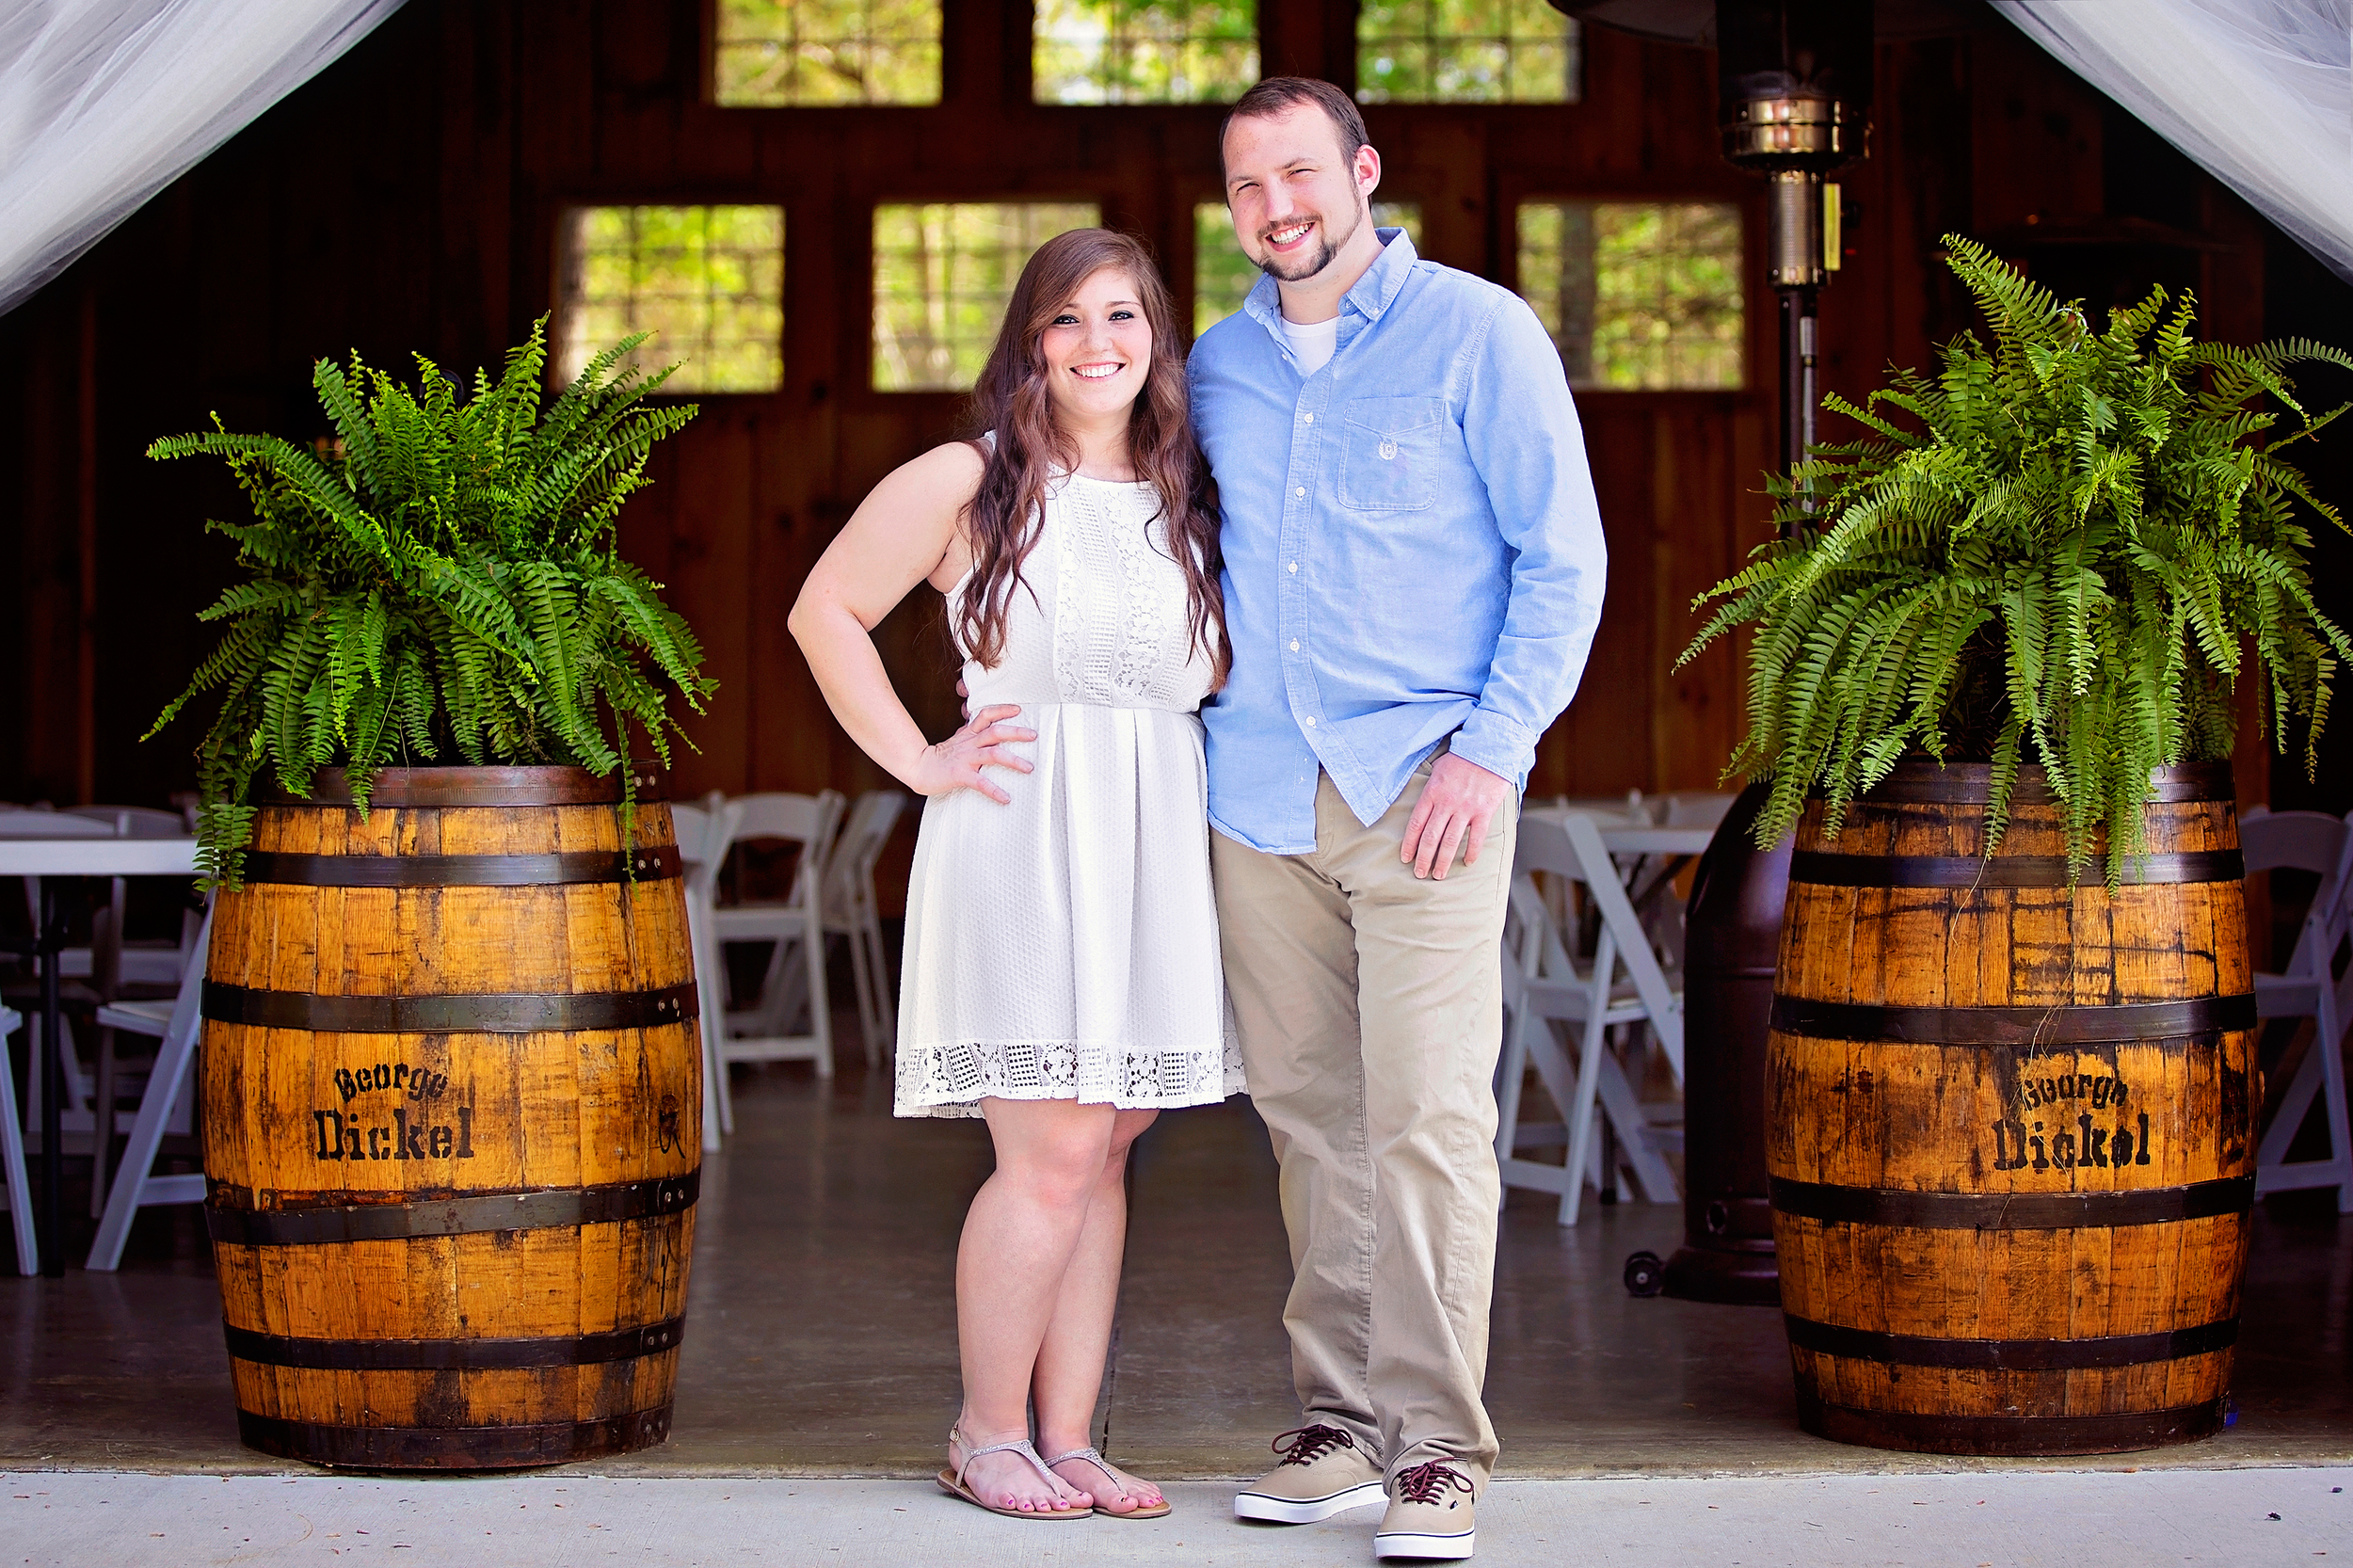 Jobanna Jimenez and Tanner Hicks Engagement